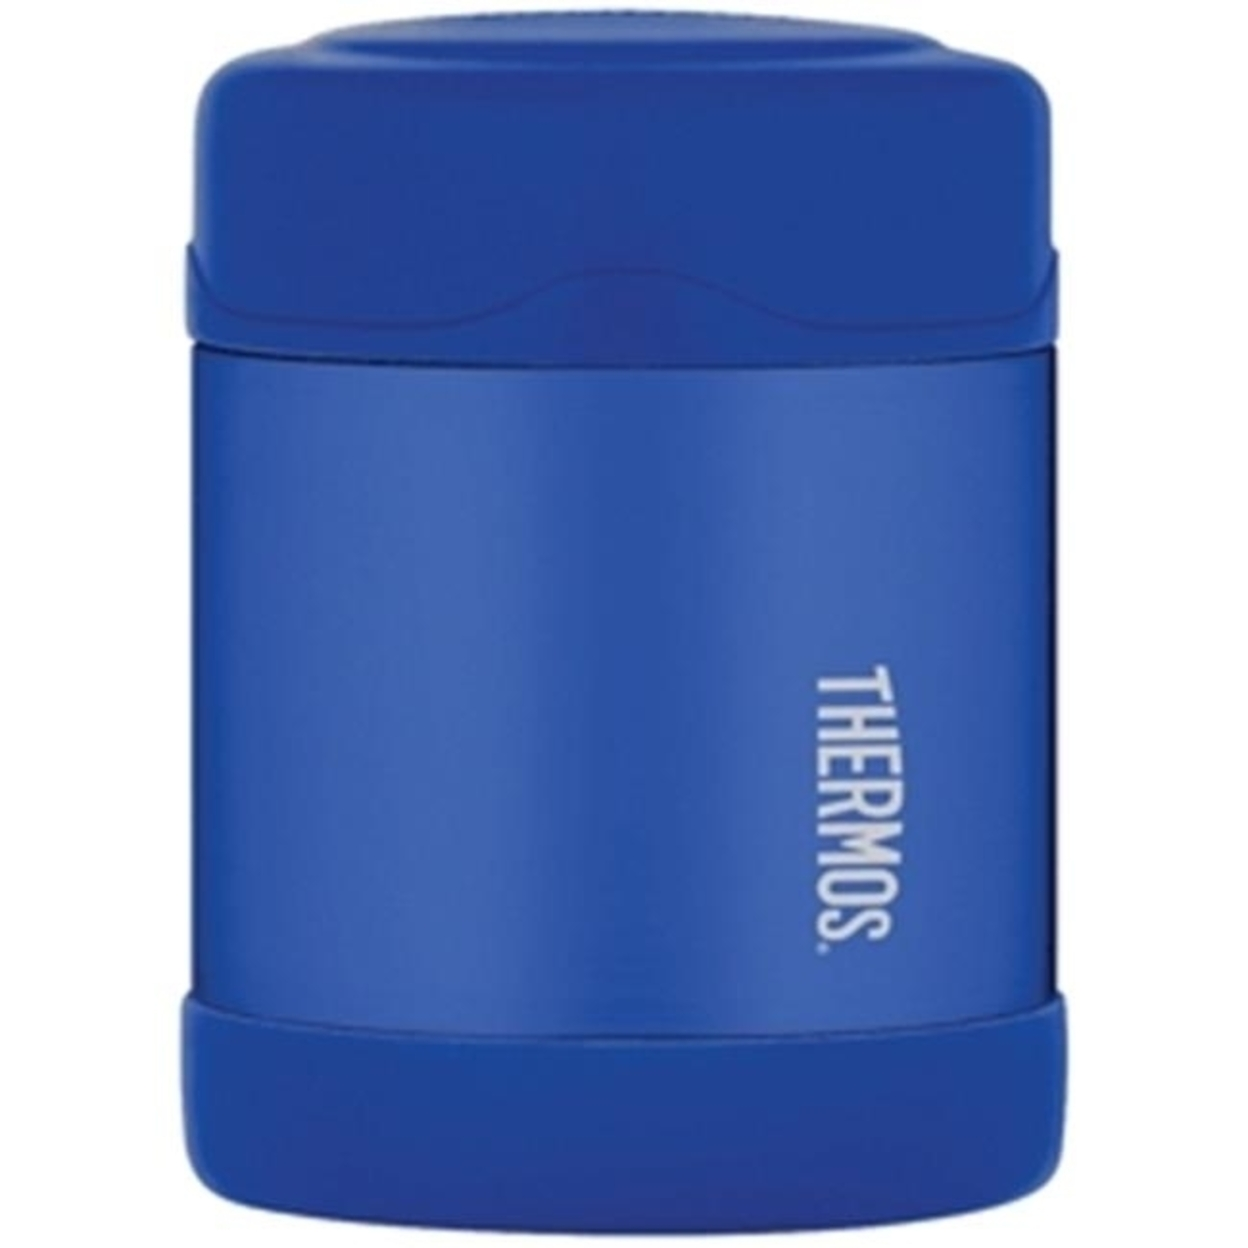 Thermos F3003Bl6 Funtainer Vacuum Insulated Food Jar Stainless Steel - Blue 59f0c701e2246160f82dbb8e